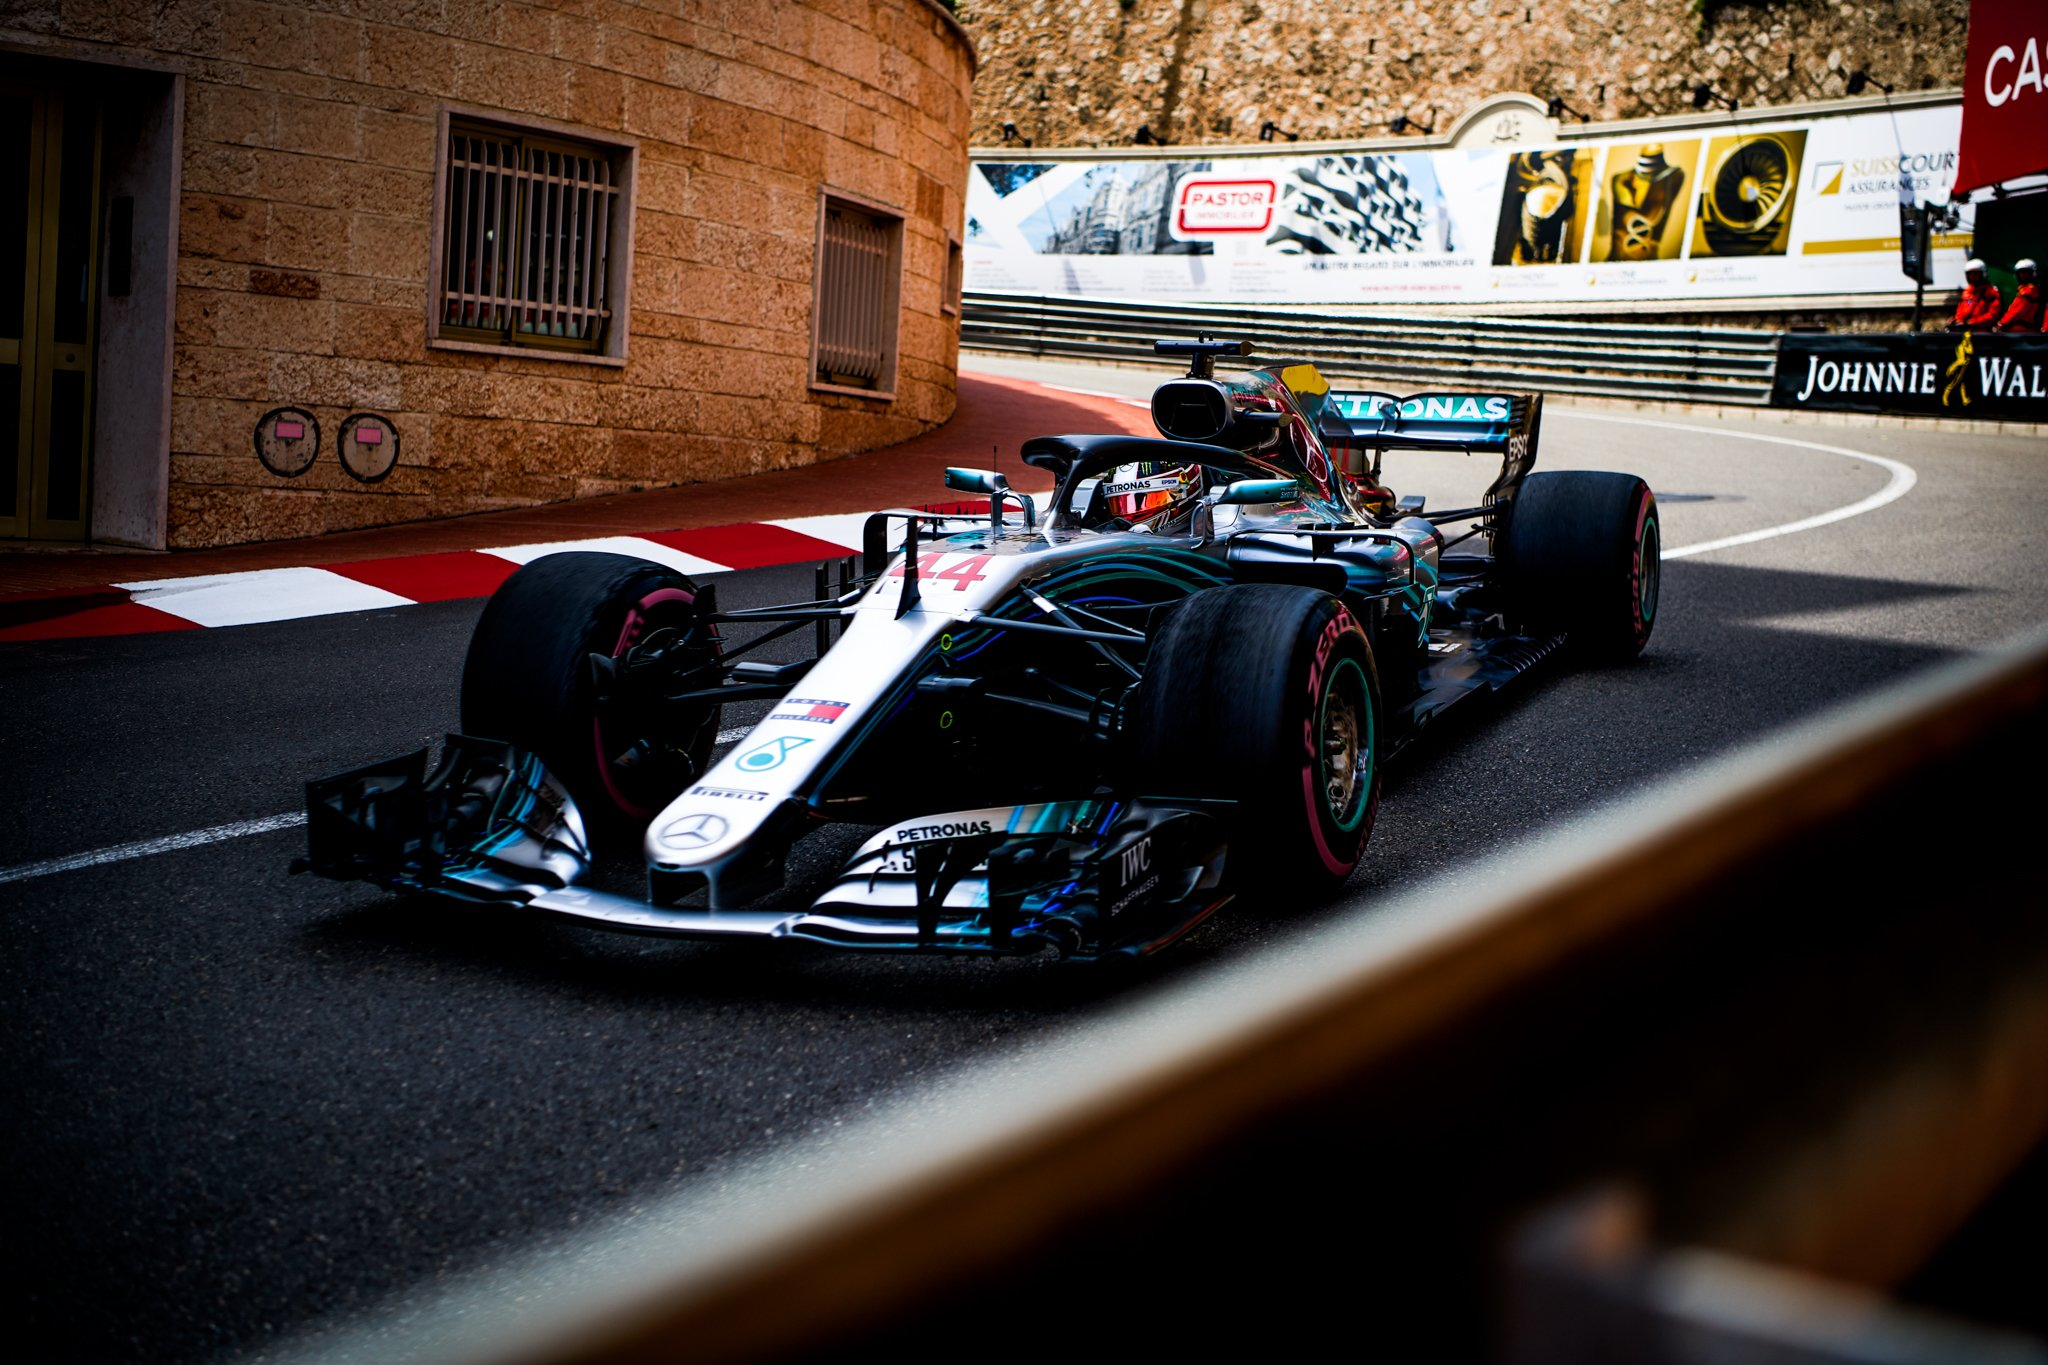 Full throttle on the streets ⚡ Are you looking forward to the race weekend? #MonacoGP �� Vid Vorsic @MercedesAMGF1 https://t.co/SfYxsma4cM